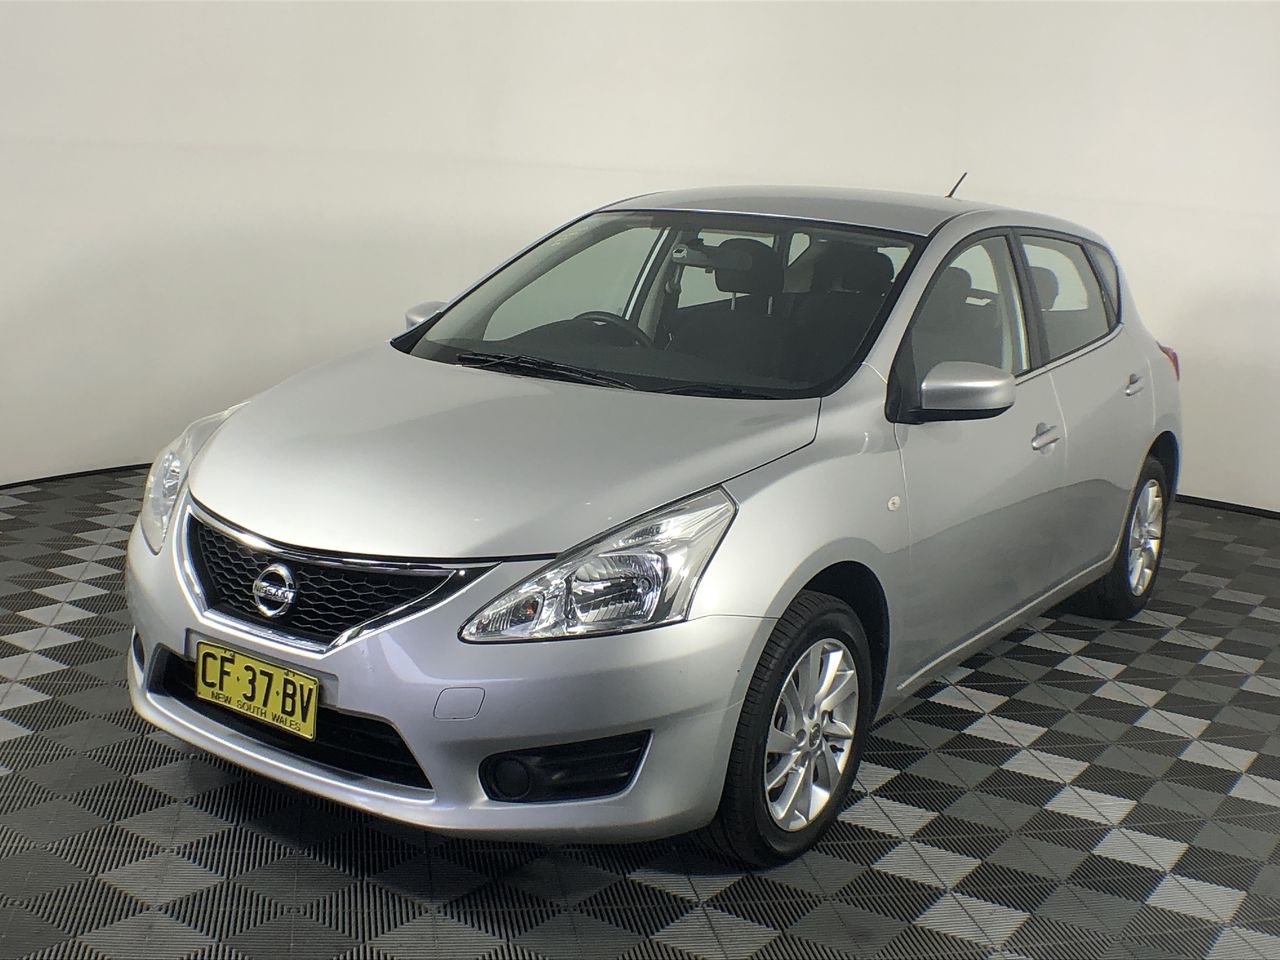 2015 Nissan Pulsar ST C12 CVT Hatchback 67,835km